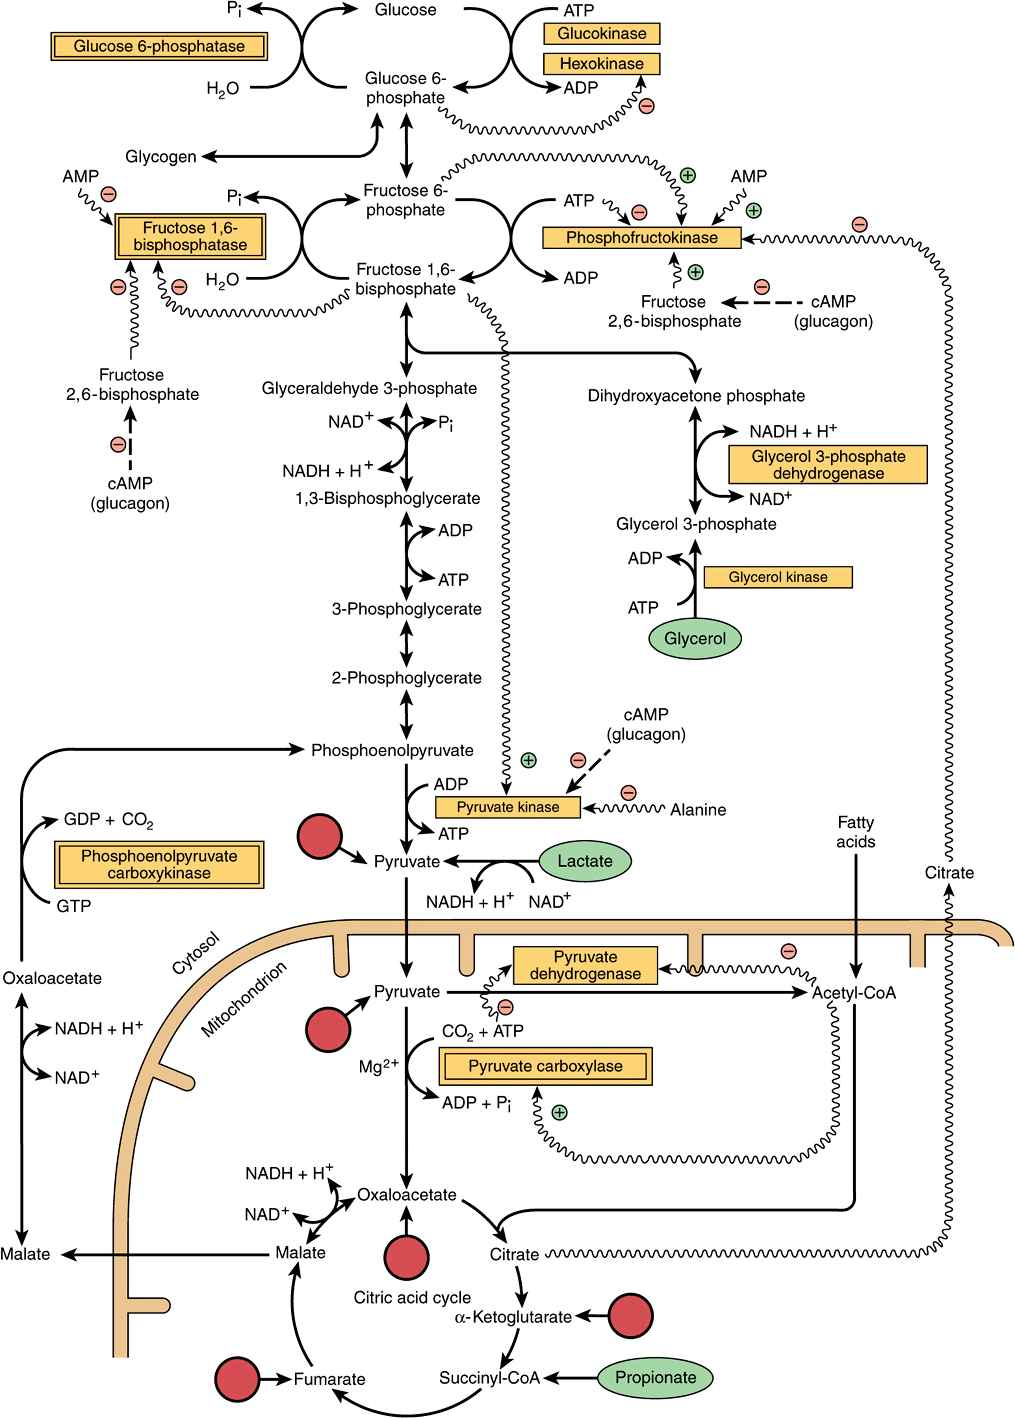 Gluconeogenesis the control of blood glucose basicmedical key figure 201 major pathways and regulation of gluconeogenesis and glycolysis in the liver entry points of glucogenic amino acids after transamination are pooptronica Images